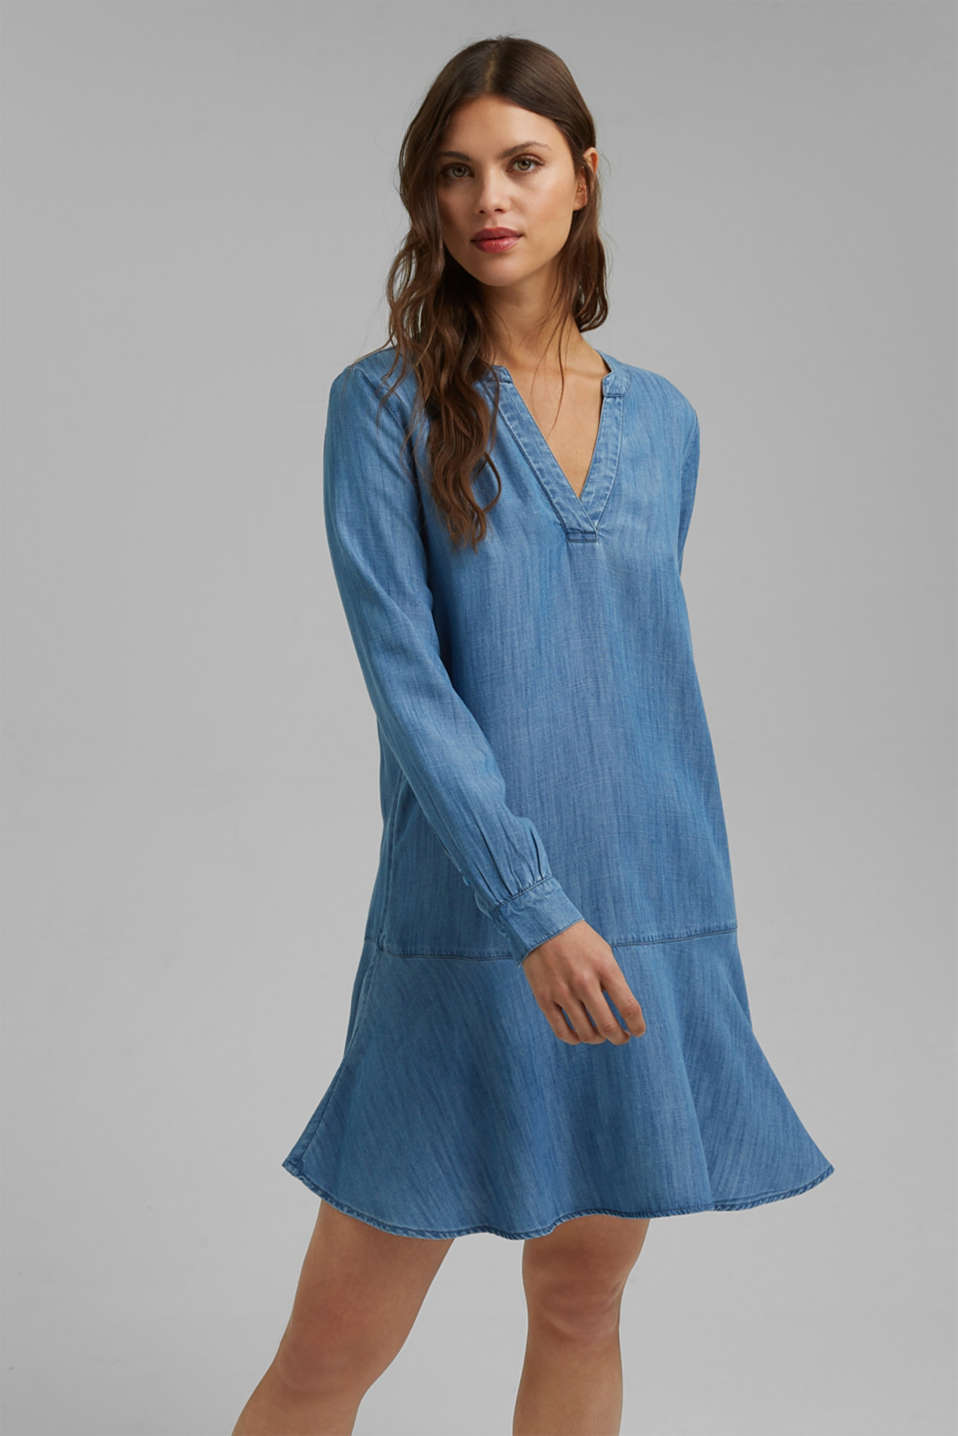 Esprit - Made of TENCEL™: Denim dress with flounces